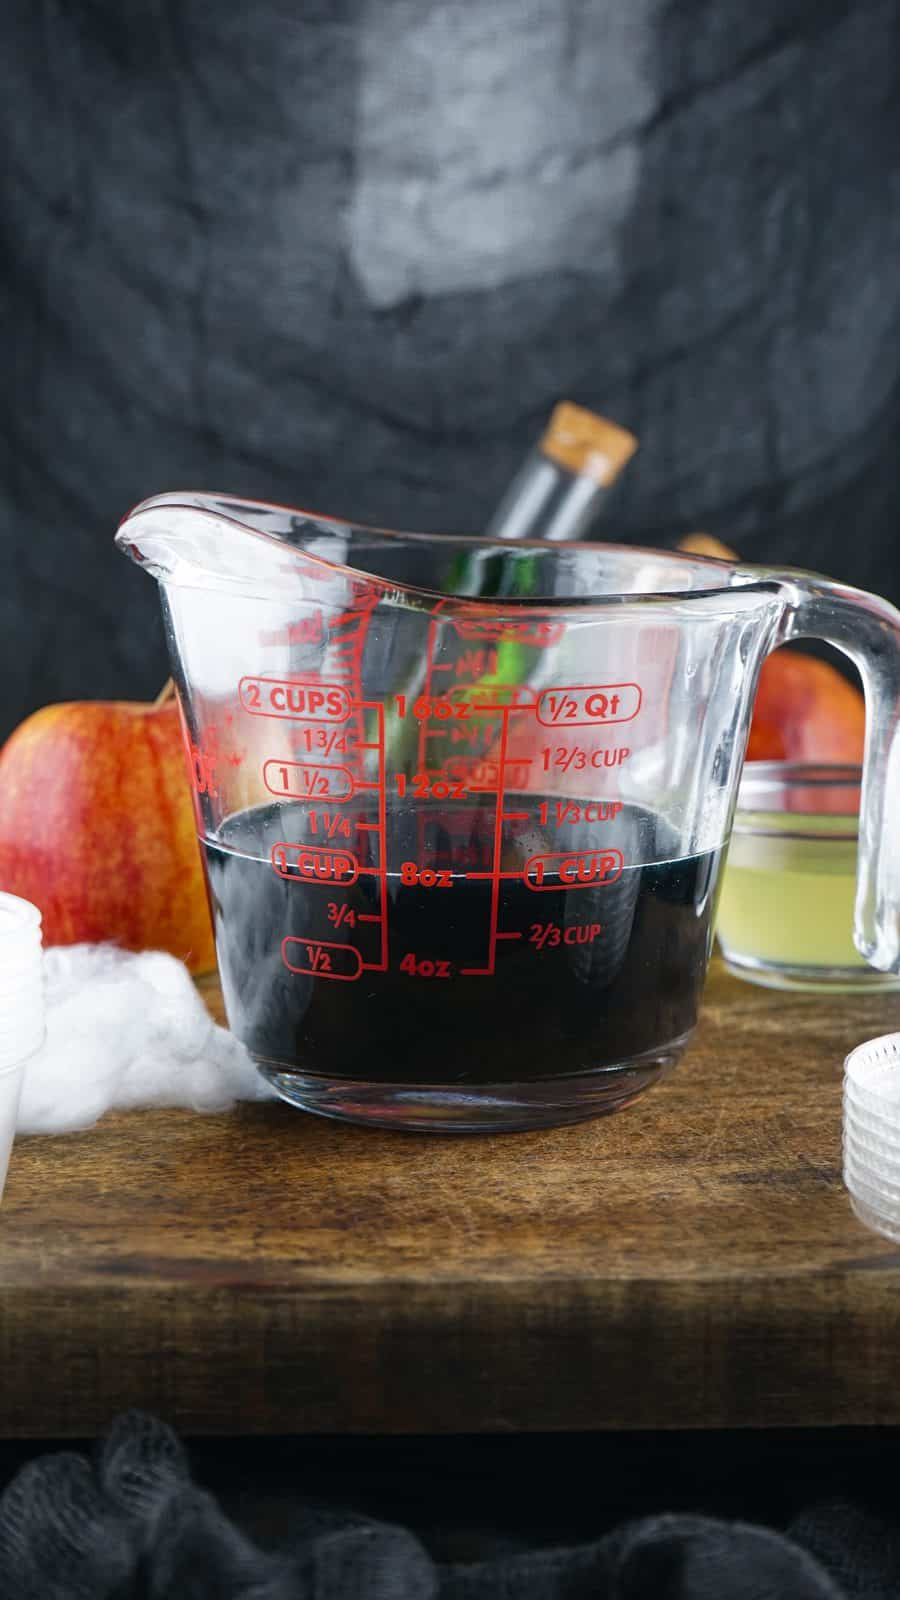 Remaining jell-o mixture with black food coloring added in measuring cup.